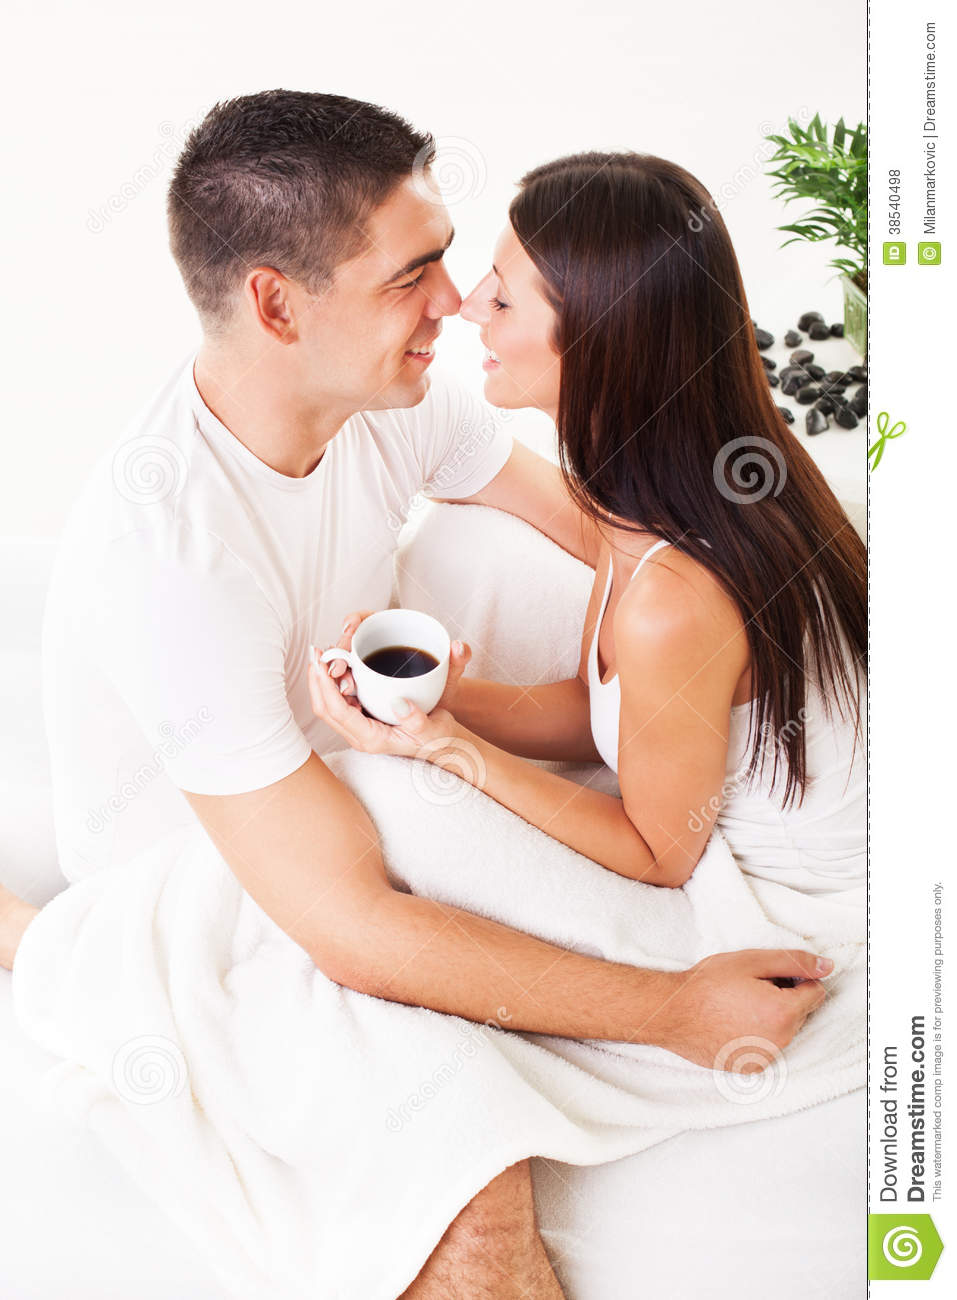 Sex In The Morning Bed Free Download 65